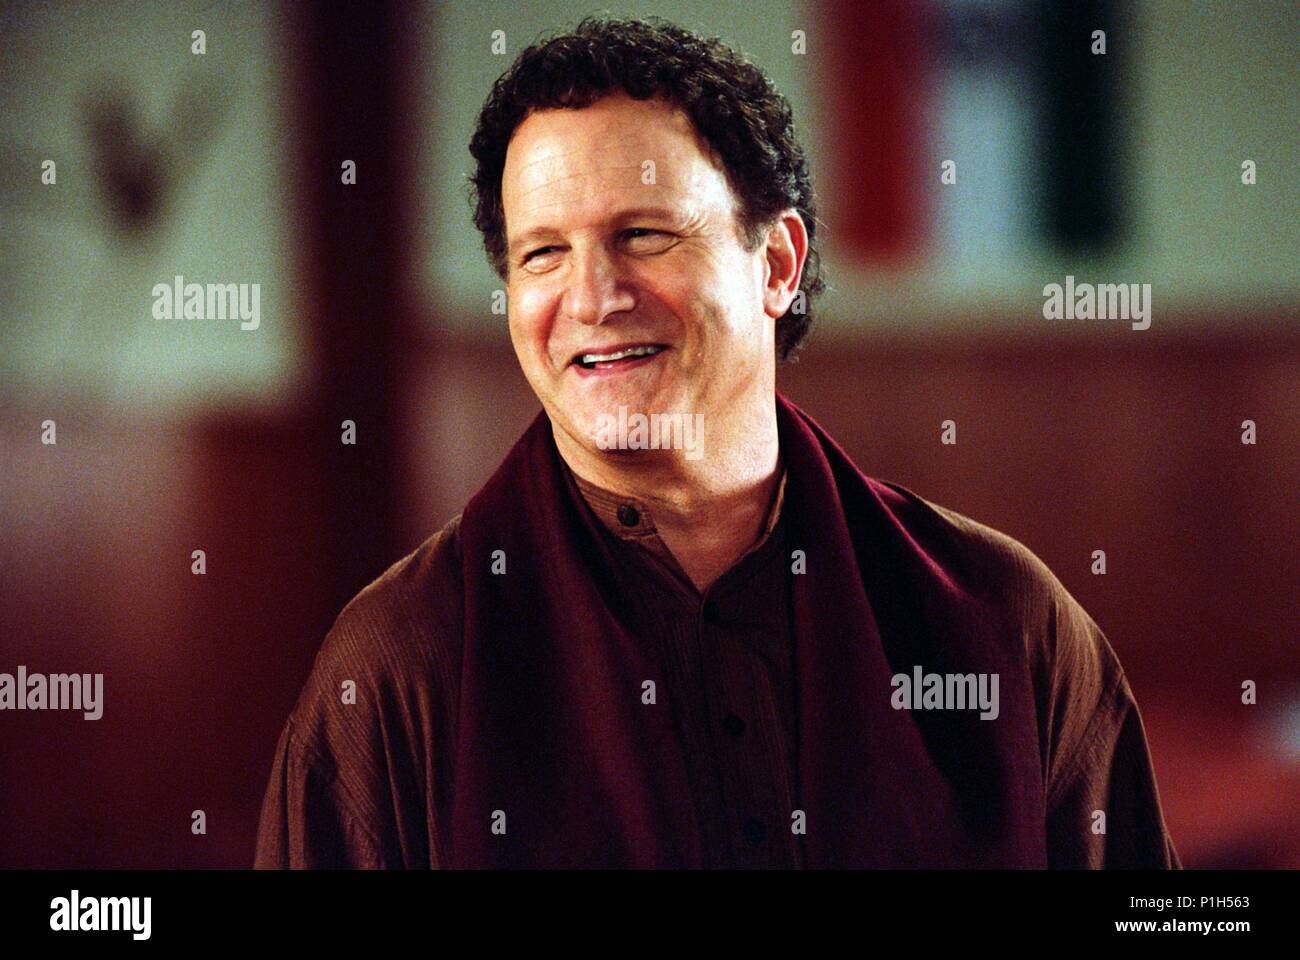 Original Film Title: LOOKING FOR COMEDY IN THE MUSLIM WORLD.  English Title: LOOKING FOR COMEDY IN THE MUSLIM WORLD.  Film Director: ALBERT BROOKS.  Year: 2005.  Stars: ALBERT BROOKS. Credit: WARNER INDEPENDENT PICTURES / TERRELL, LACEY / Album - Stock Image